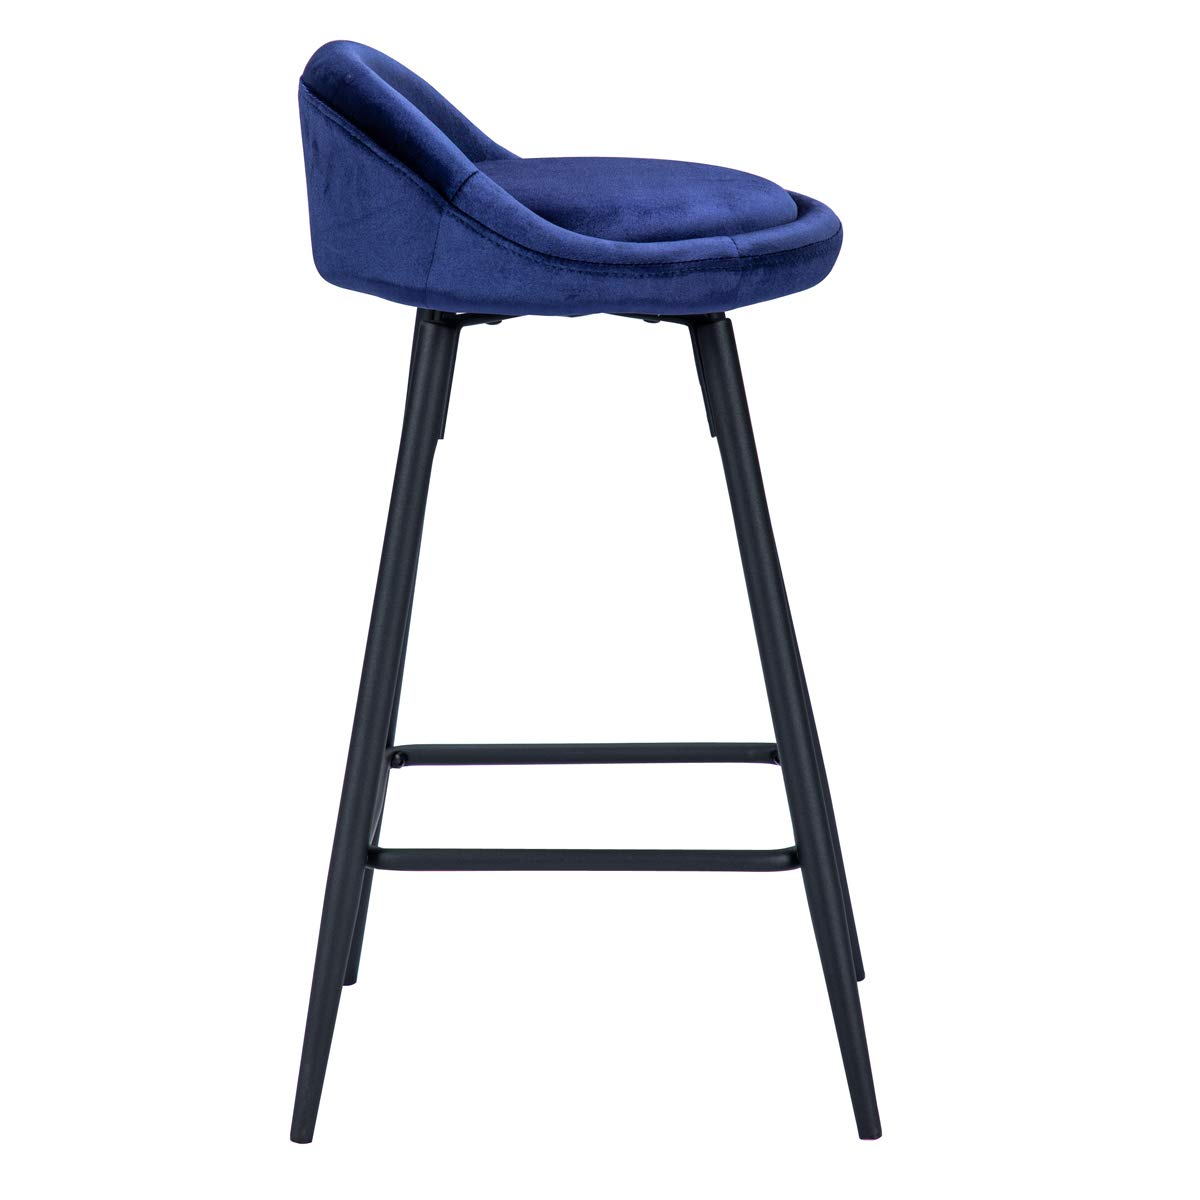 Andeworld Set of 2 Swivel Upholstered Counter Height Bar Stools Industrial Metal Bar Stools 10 Blue, Swivel 26 Inch